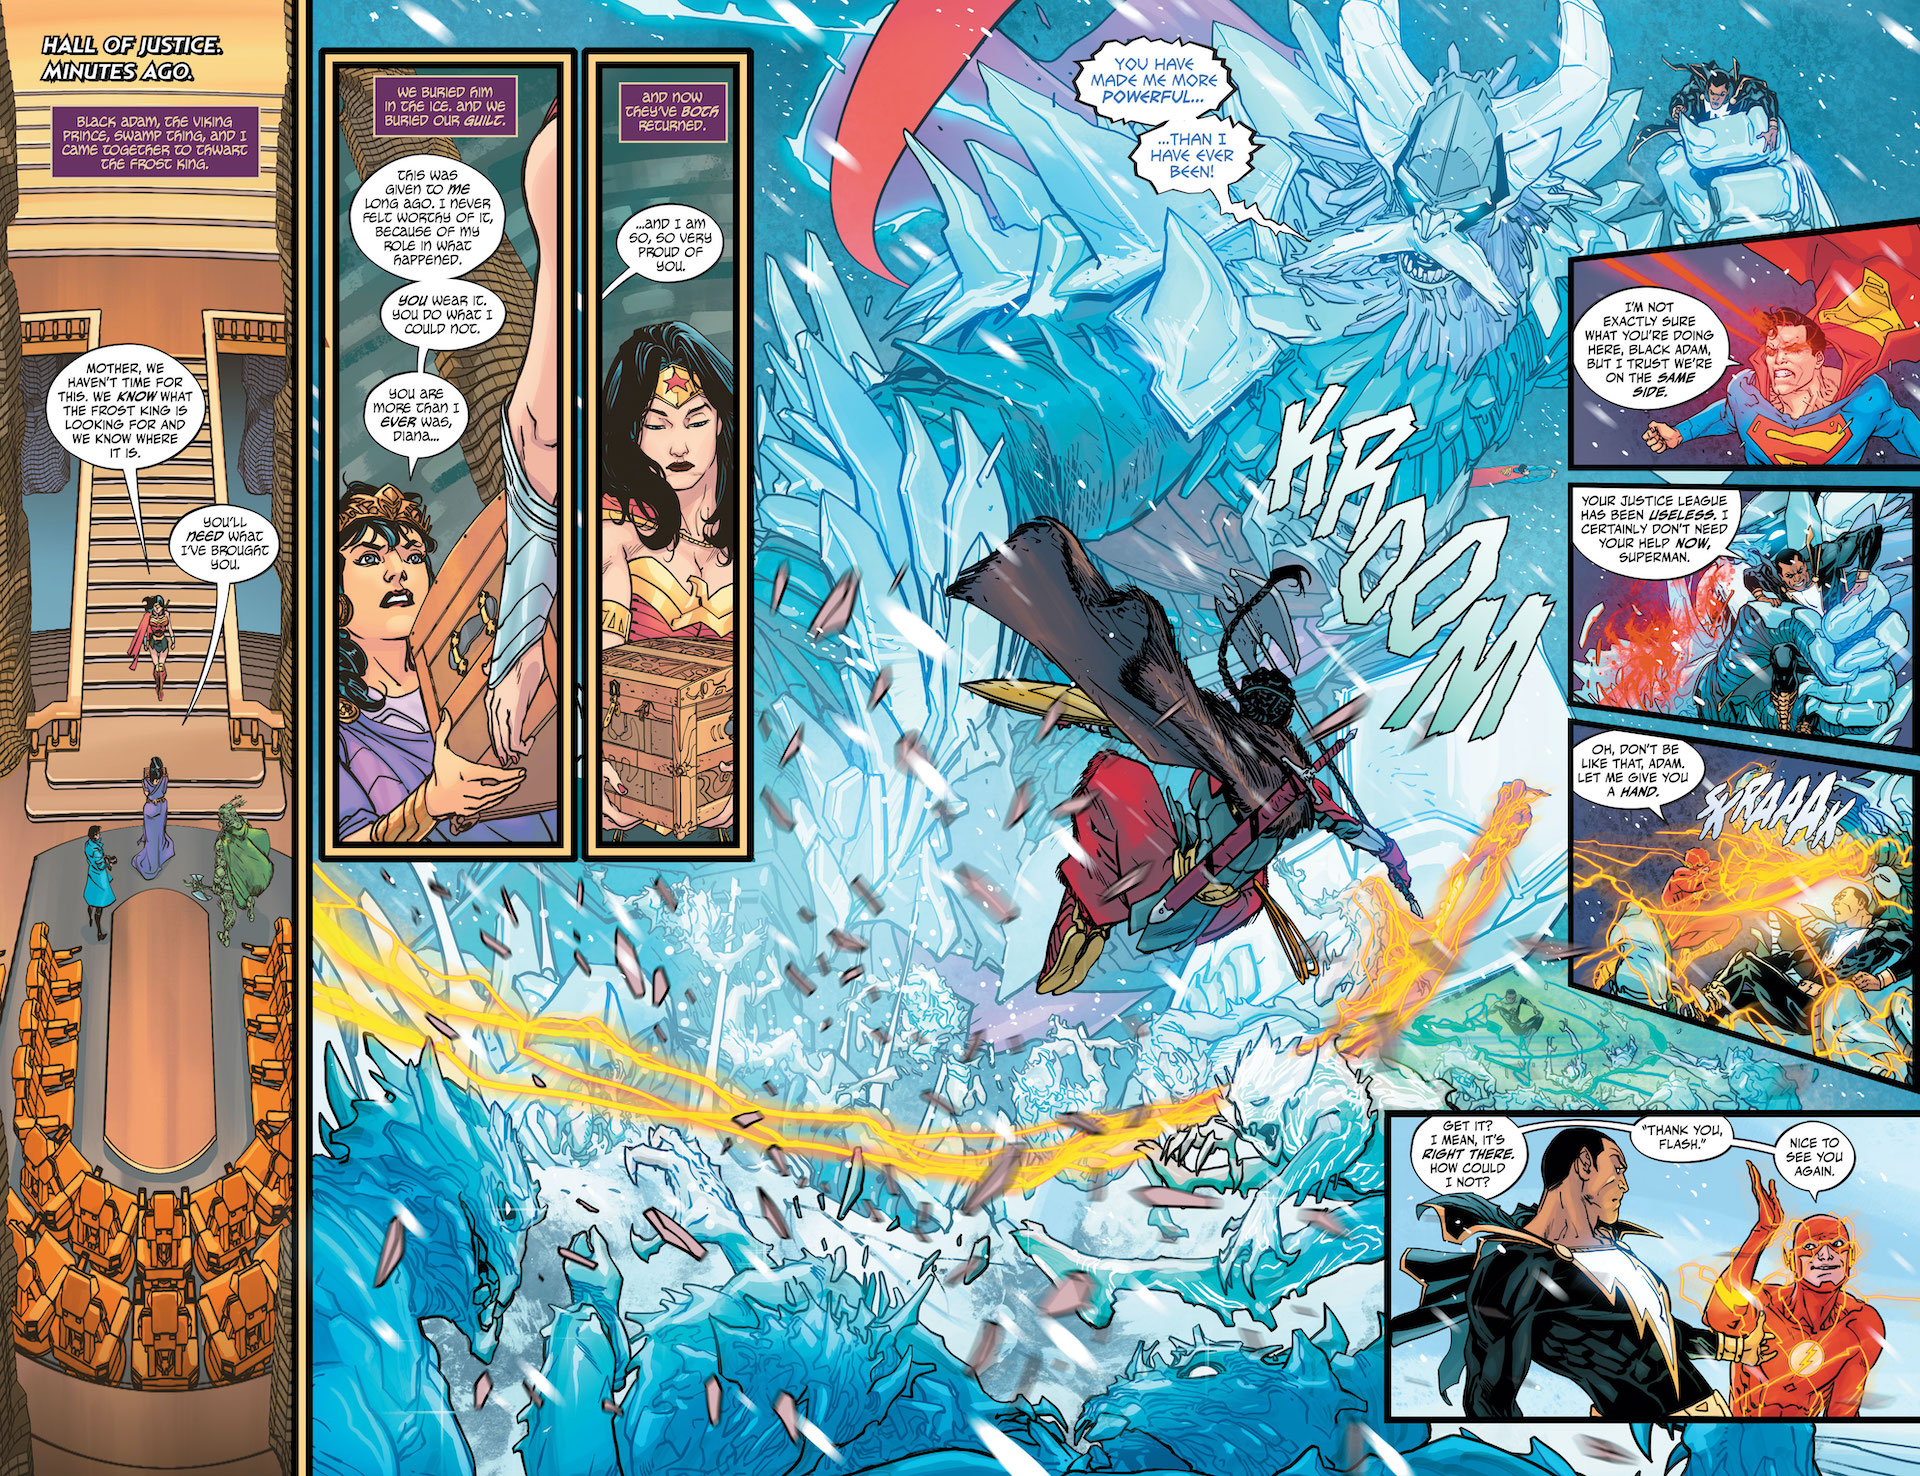 Justice League: Endless Winter #2 preview